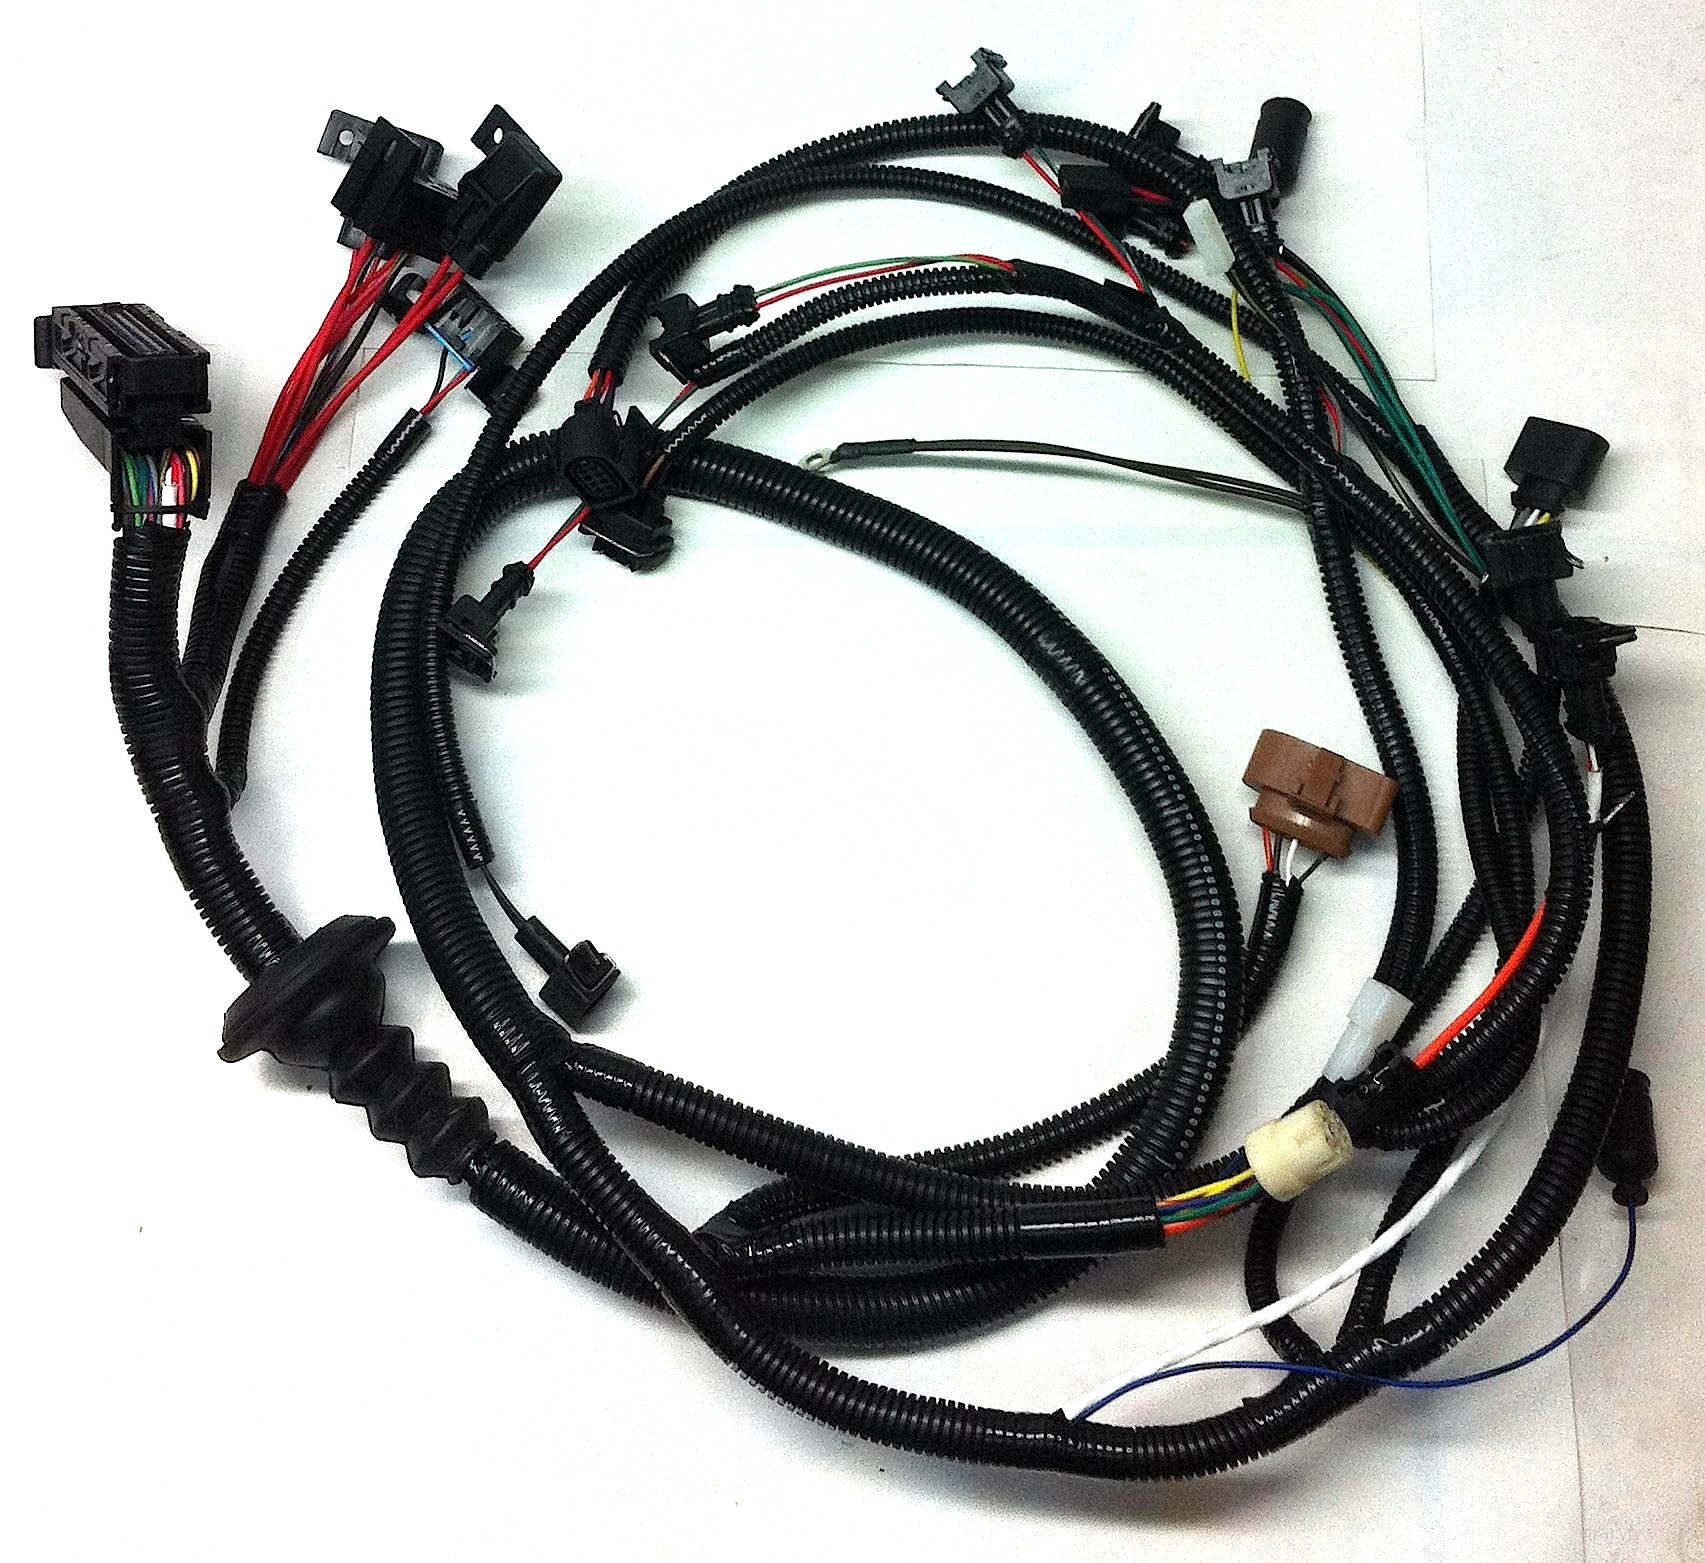 Wiring_Harness_2LR 2lr tiico conversion wiring harness foreign auto & supply, inc  at bakdesigns.co